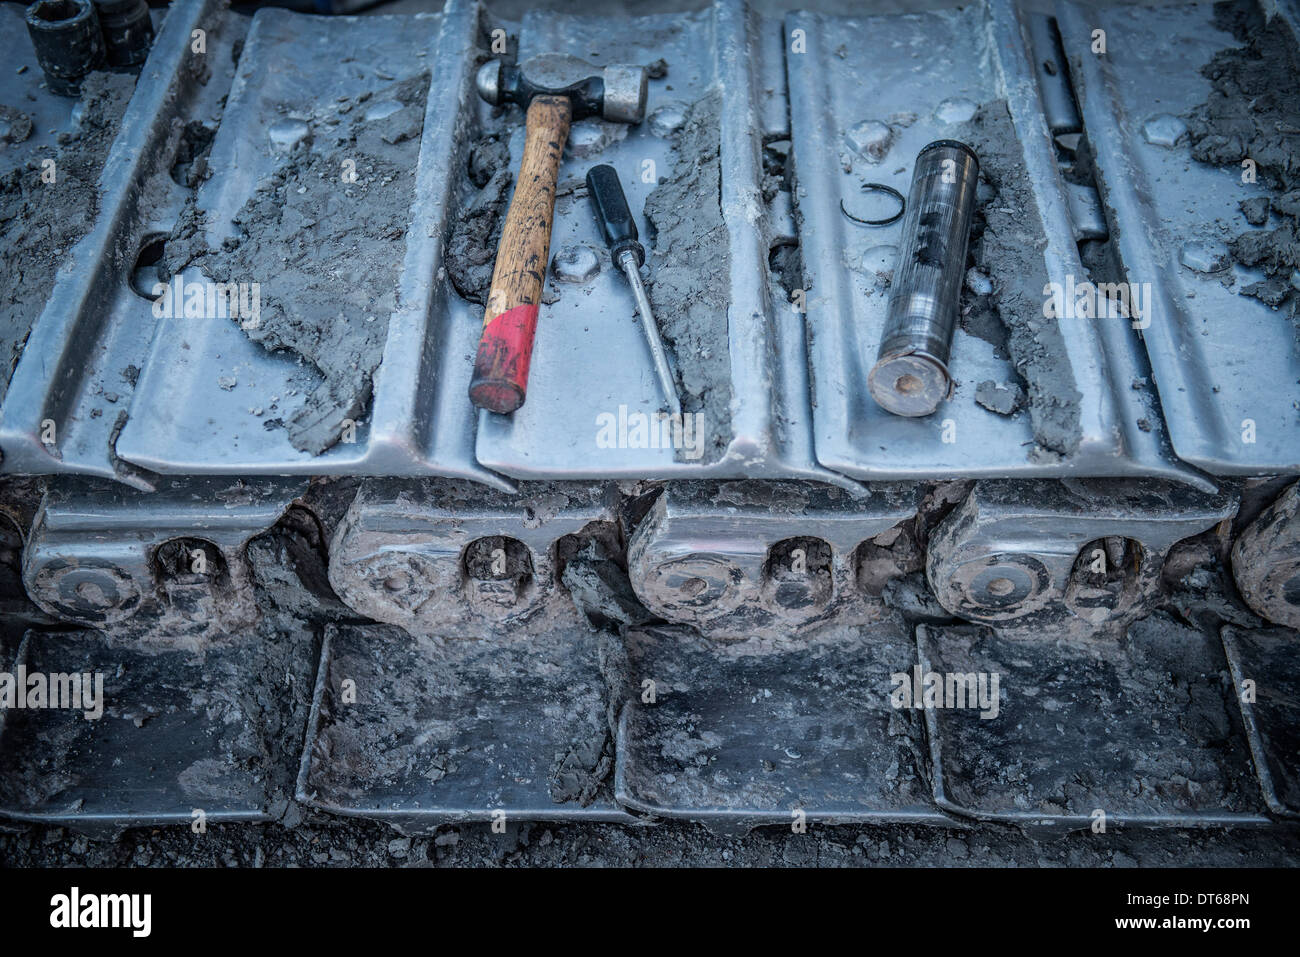 Repairs being made to bulldozer tracks at surface coal mine, close up - Stock Image